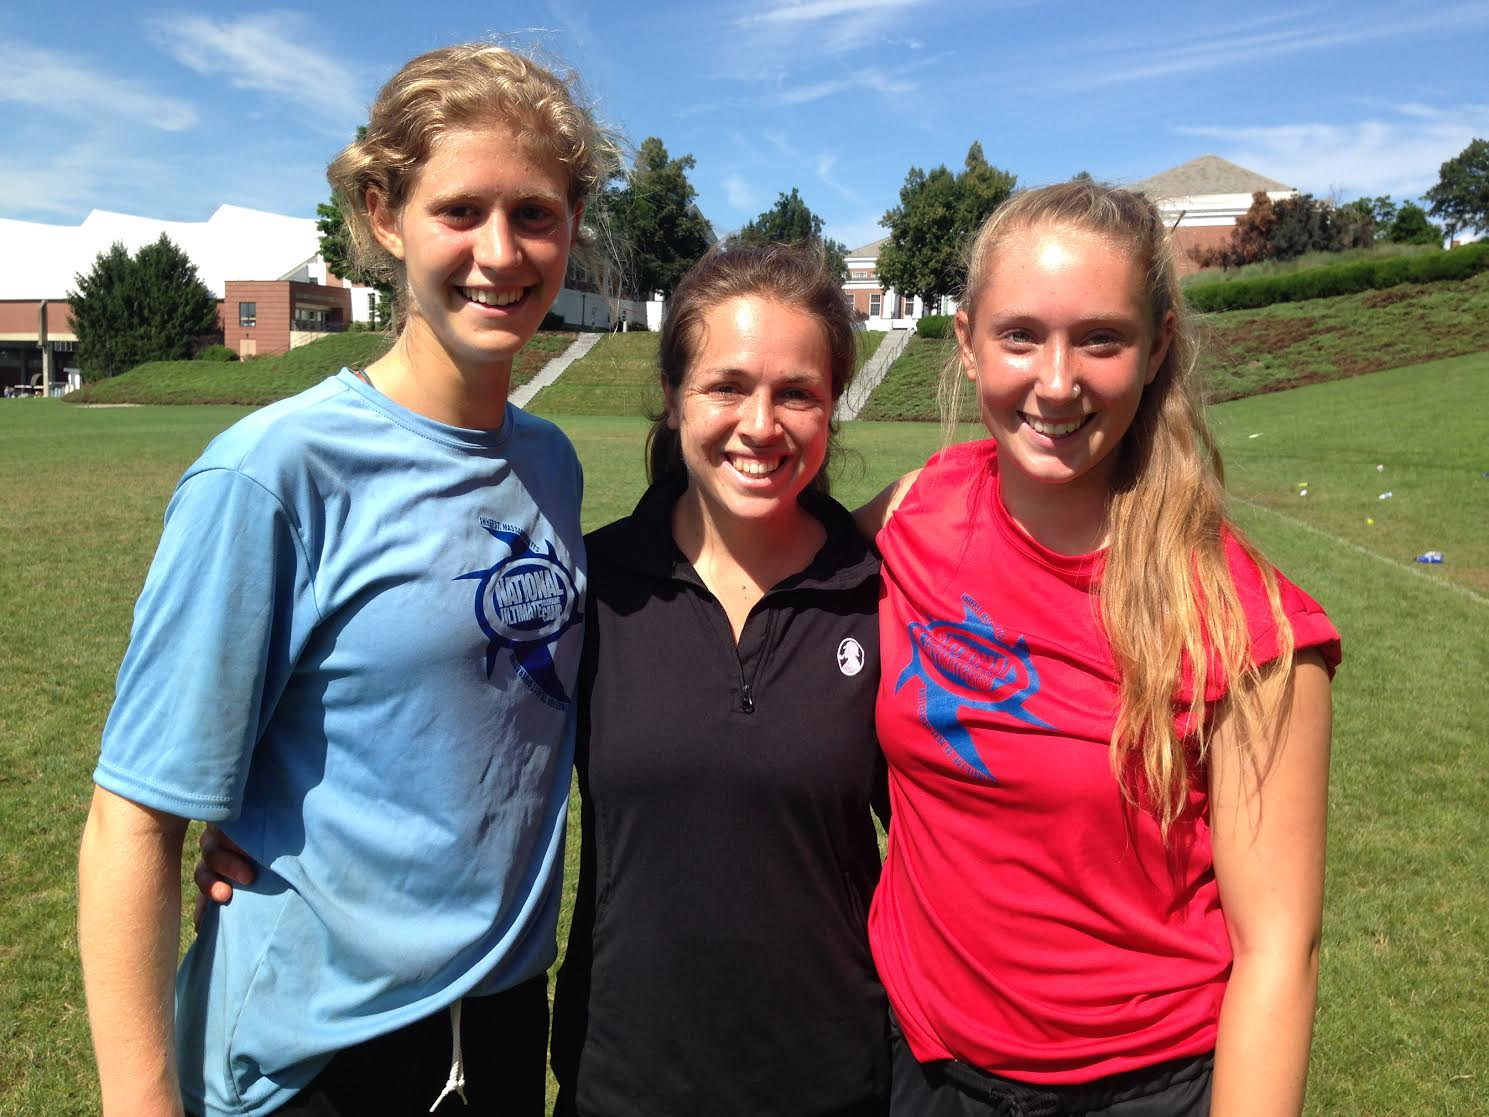 Sophia Herscu and two NUTC campers together at NUTC 2014.